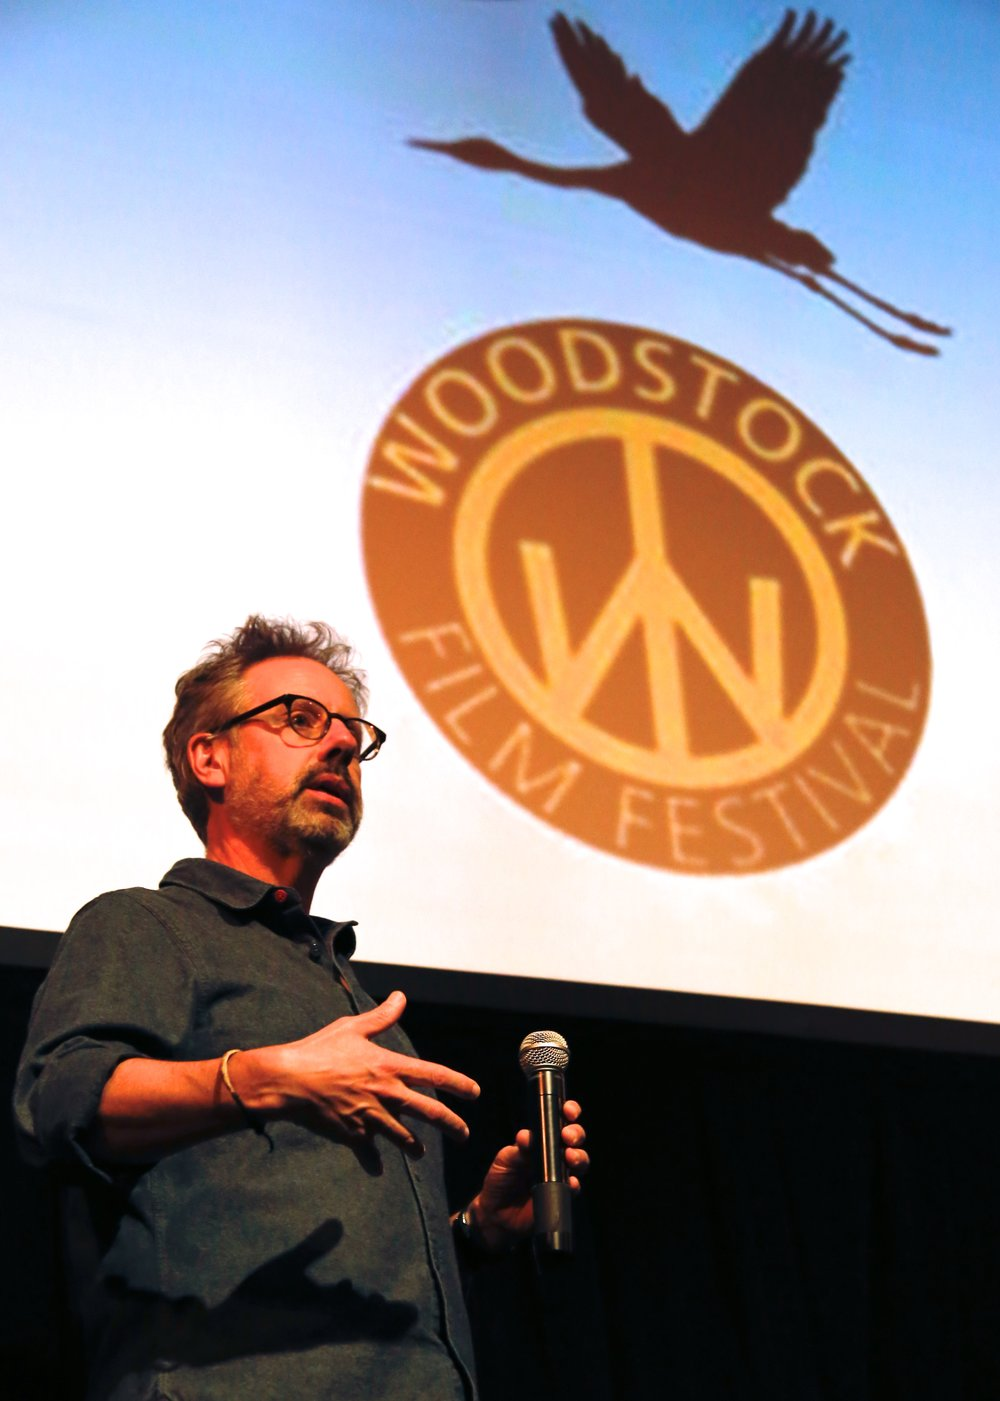 Producer, Peter Saraf (Loving) holds a Q&A at the 17th Annual Woodstock Film Festival. Photo by Matthew Dammer